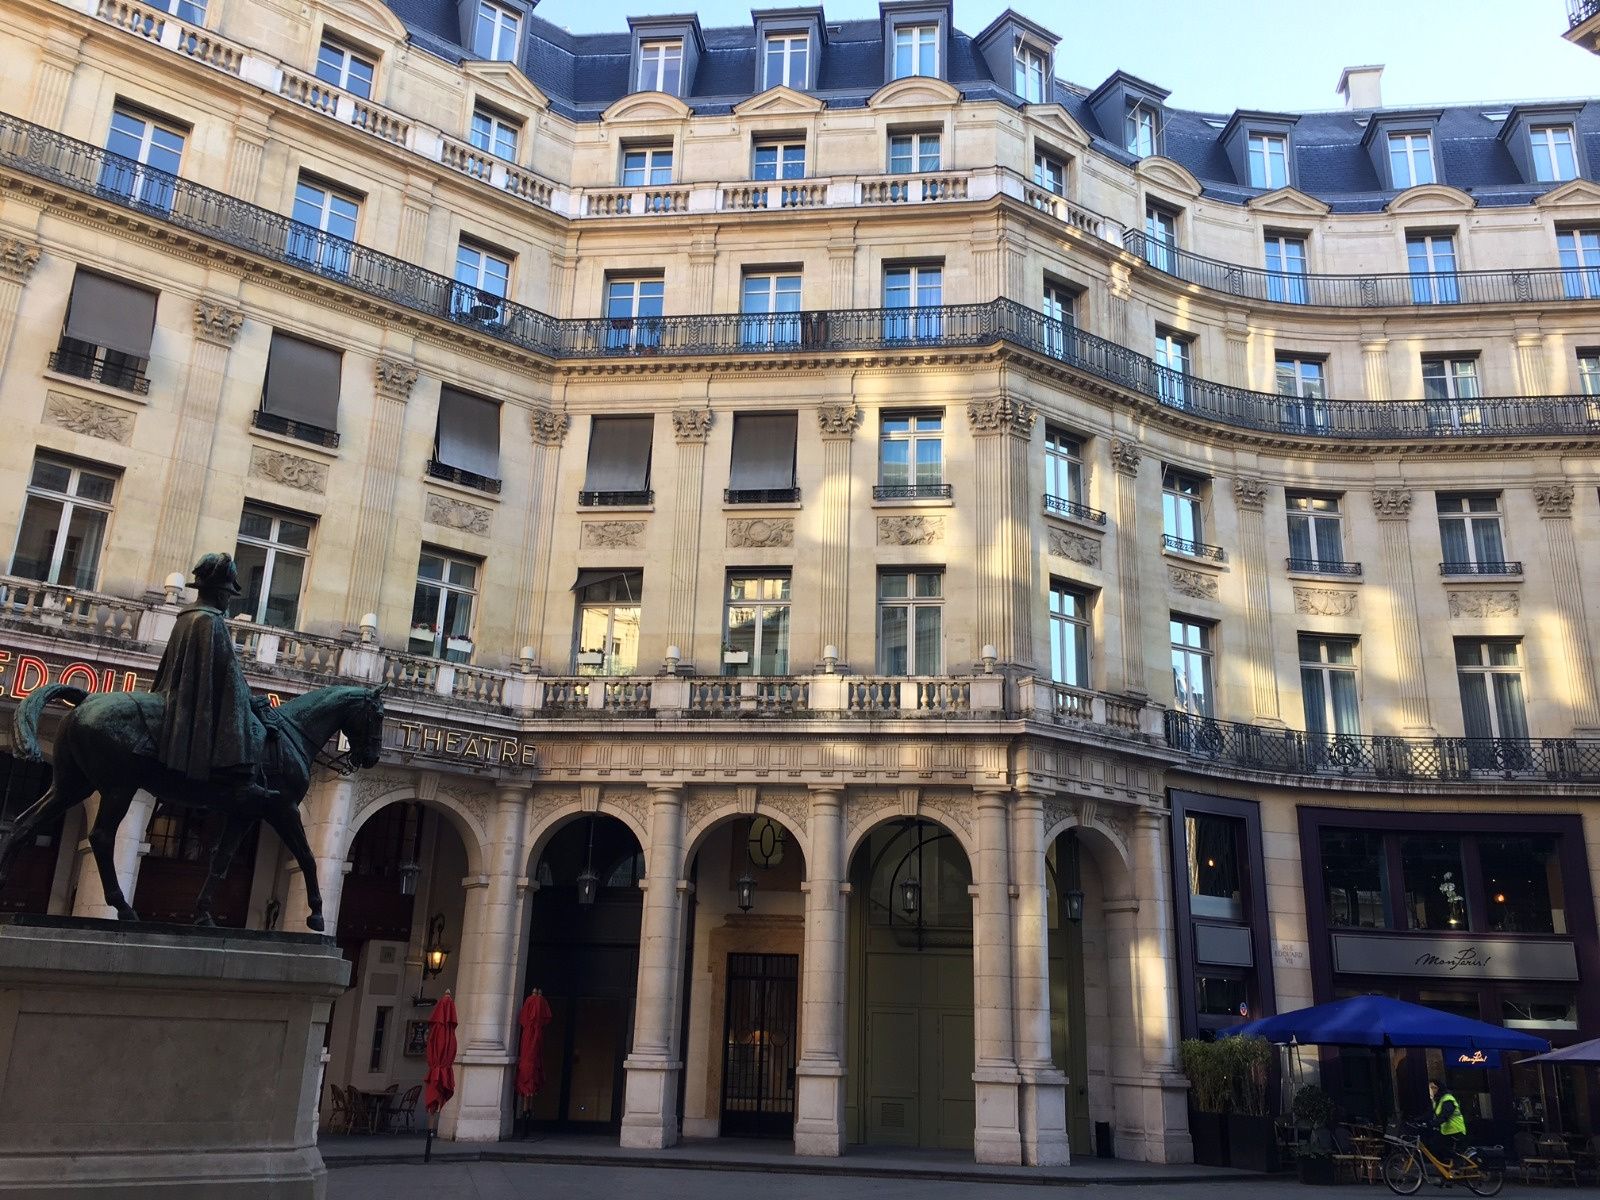 Agence immobili re chl partners paris 16 me et environs for Agence immobiliere 3f boulogne billancourt